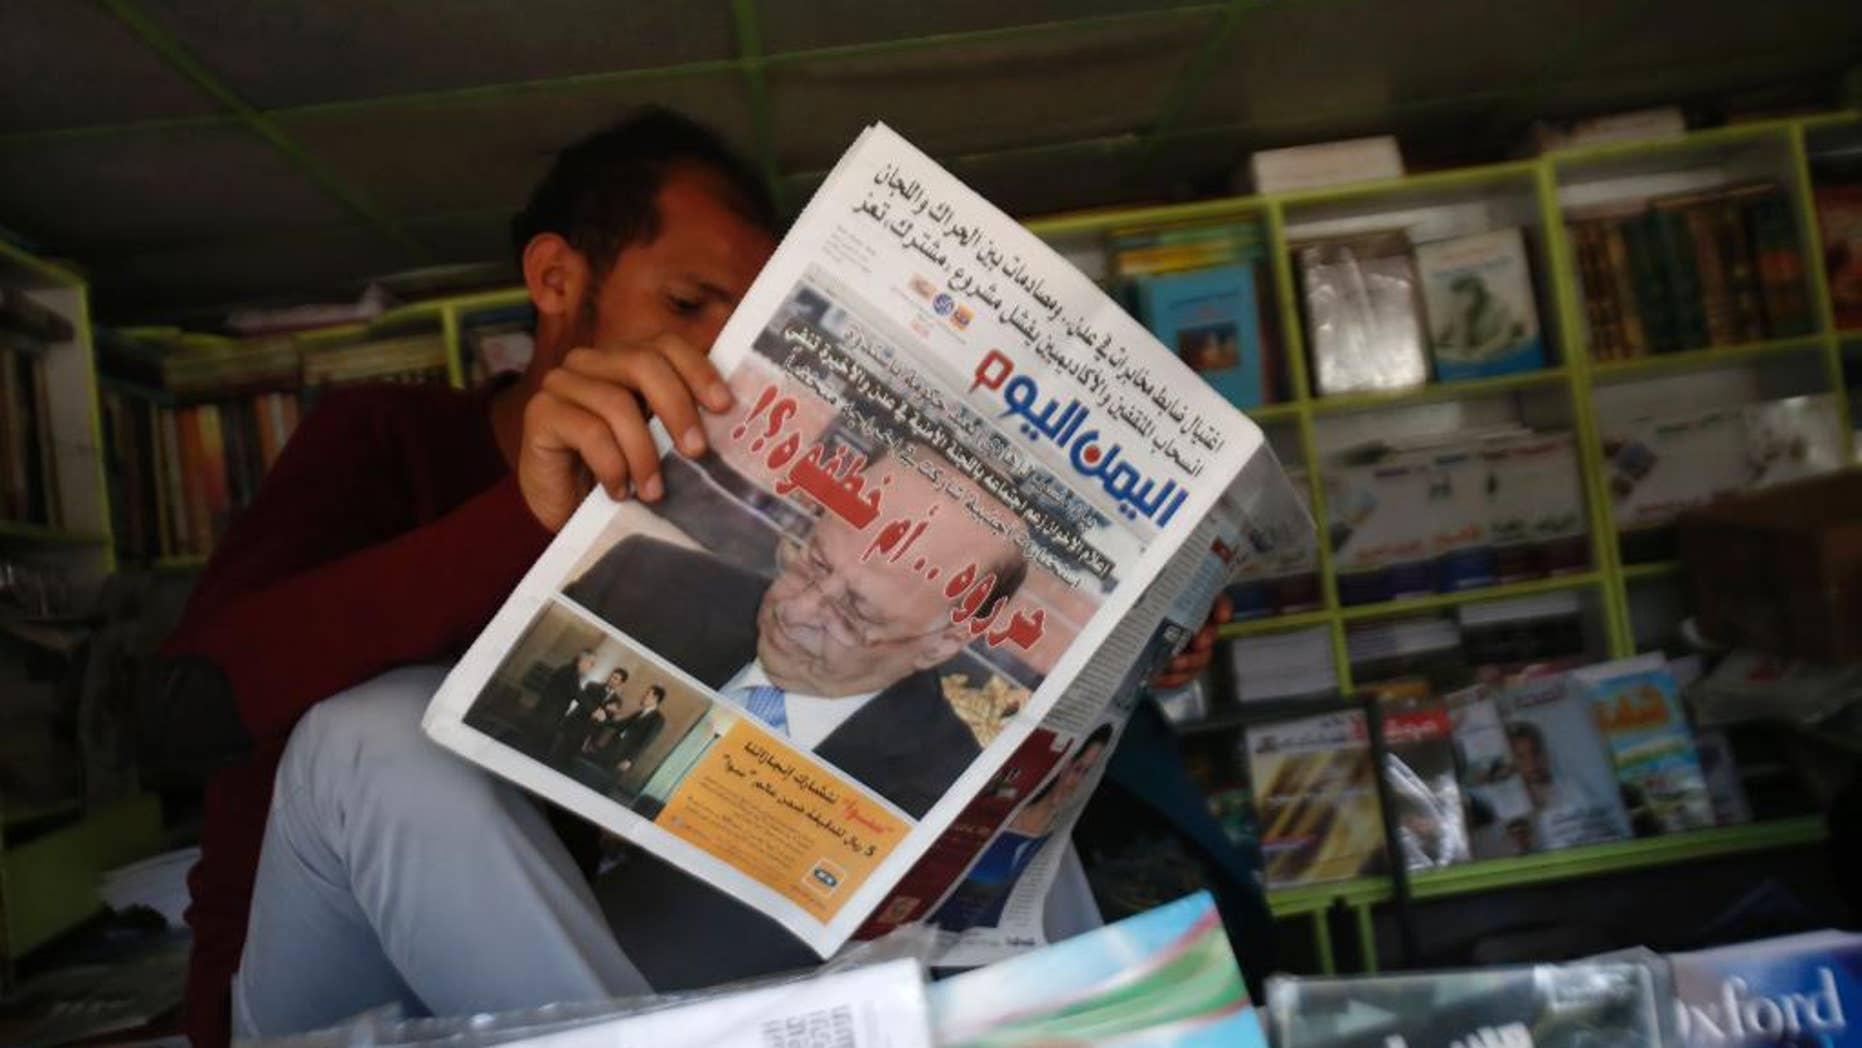 "A Yemeni man reads a newspaper featuring the front page with a photograph of former President Abed Rabbo Mansour Hadi, and a headline in Arabic that reads, "" did they release him or kidnap him?"" in Sanaa, Yemen, Sunday, Feb. 22, 2015. Virtually powerless for months, Yemen's overthrown President Hadi appeared ready to disappear from the country after fleeing Shiite rebels who held him captive in his own home. But the soft-spoken technocrat who long has avoided the limelight stepped back into it Saturday by renouncing his own resignation and challenging the Shiite Houthi rebels who hold control the capital and large parts of the country. (AP Photo/Hani Mohammed)"